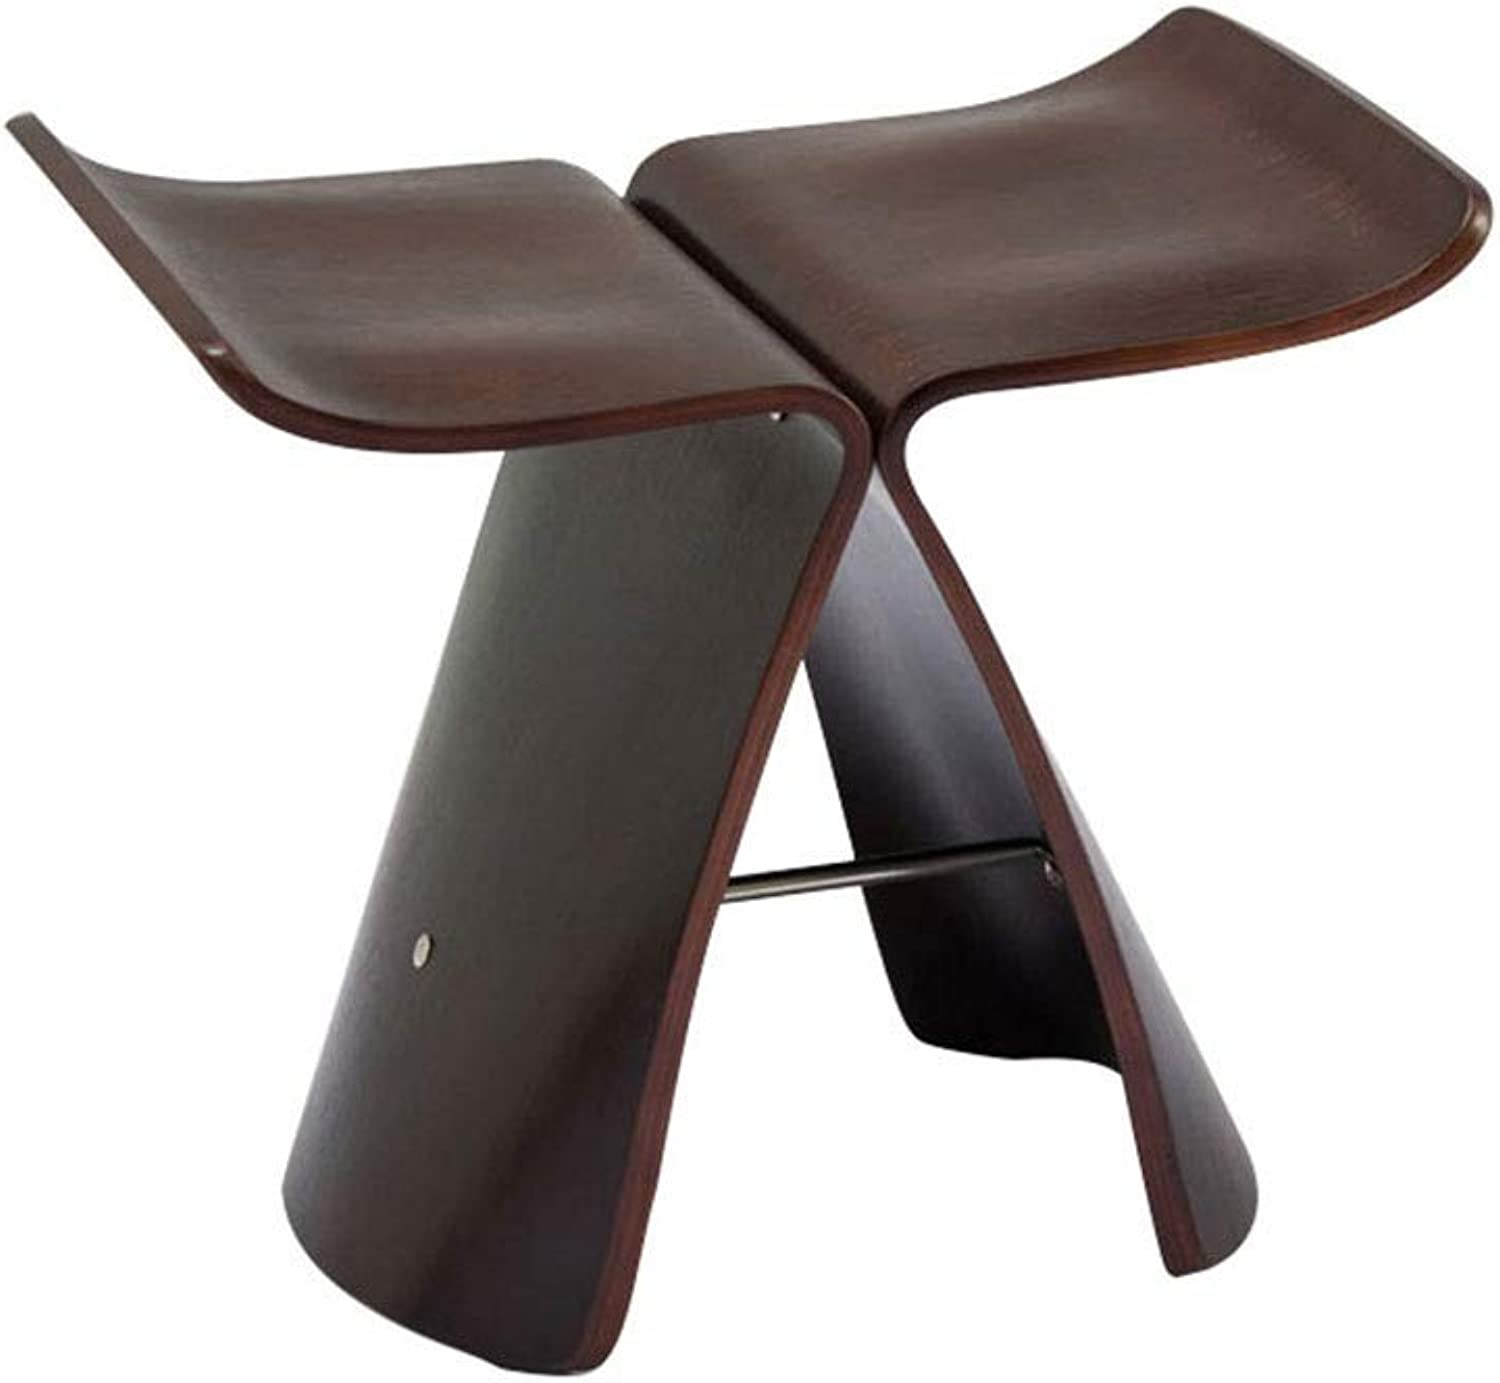 Solid Wood Small Bench Stool Low Stool Living Room Chair Butterfly Stool Wooden Stool Change shoes Bench wear shoes Stool Fashion Simple (color   C)